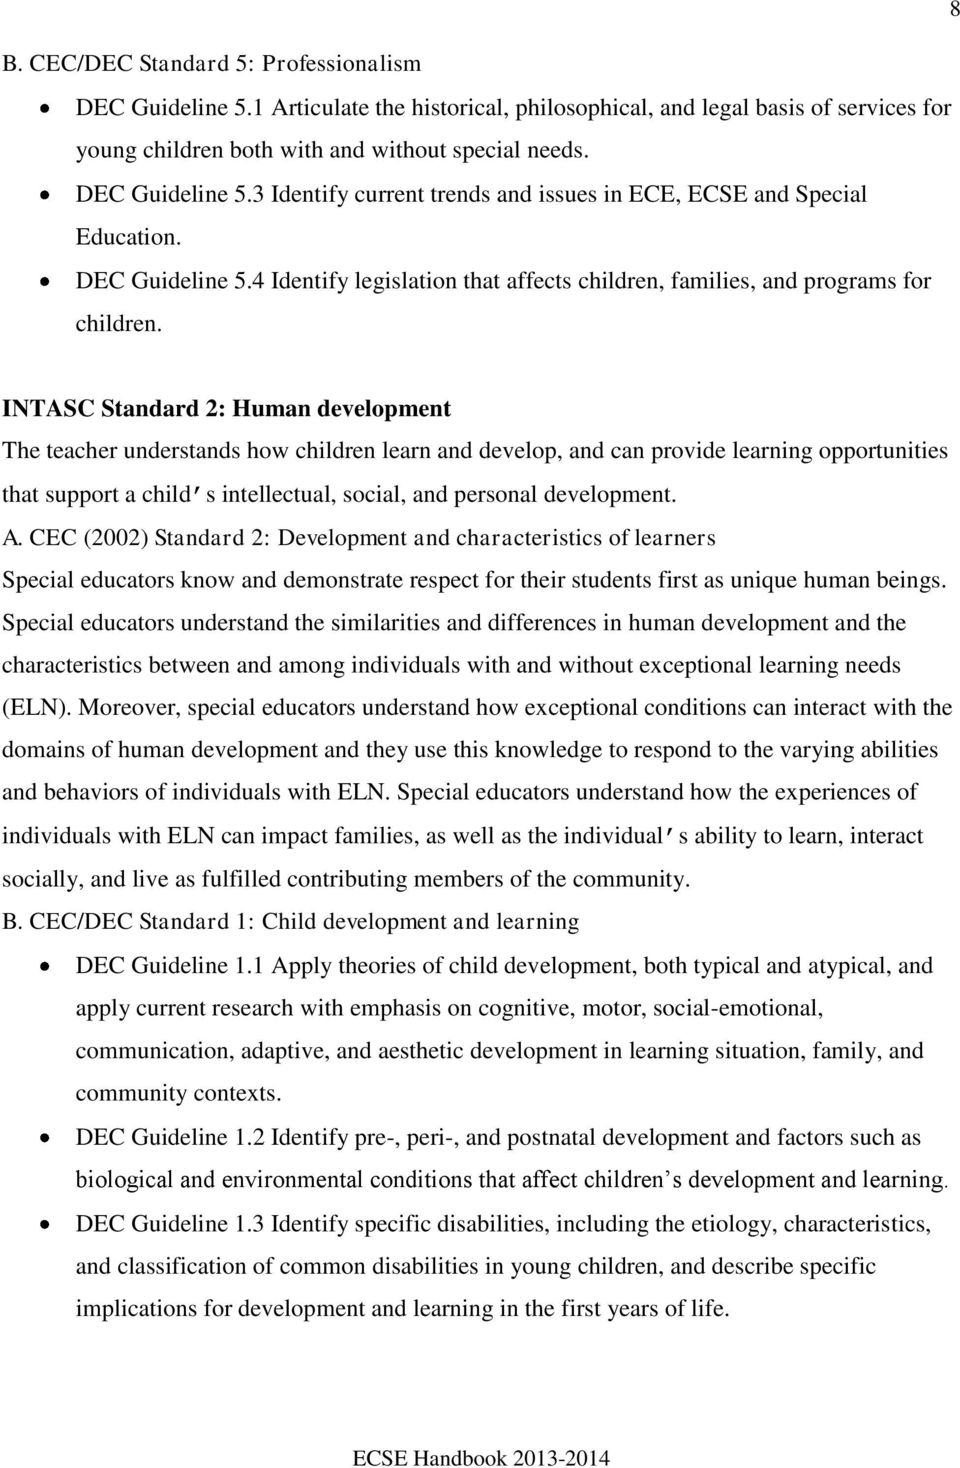 INTASC Standard 2: Human development The teacher understands how children learn and develop, and can provide learning opportunities that support a child s intellectual, social, and personal